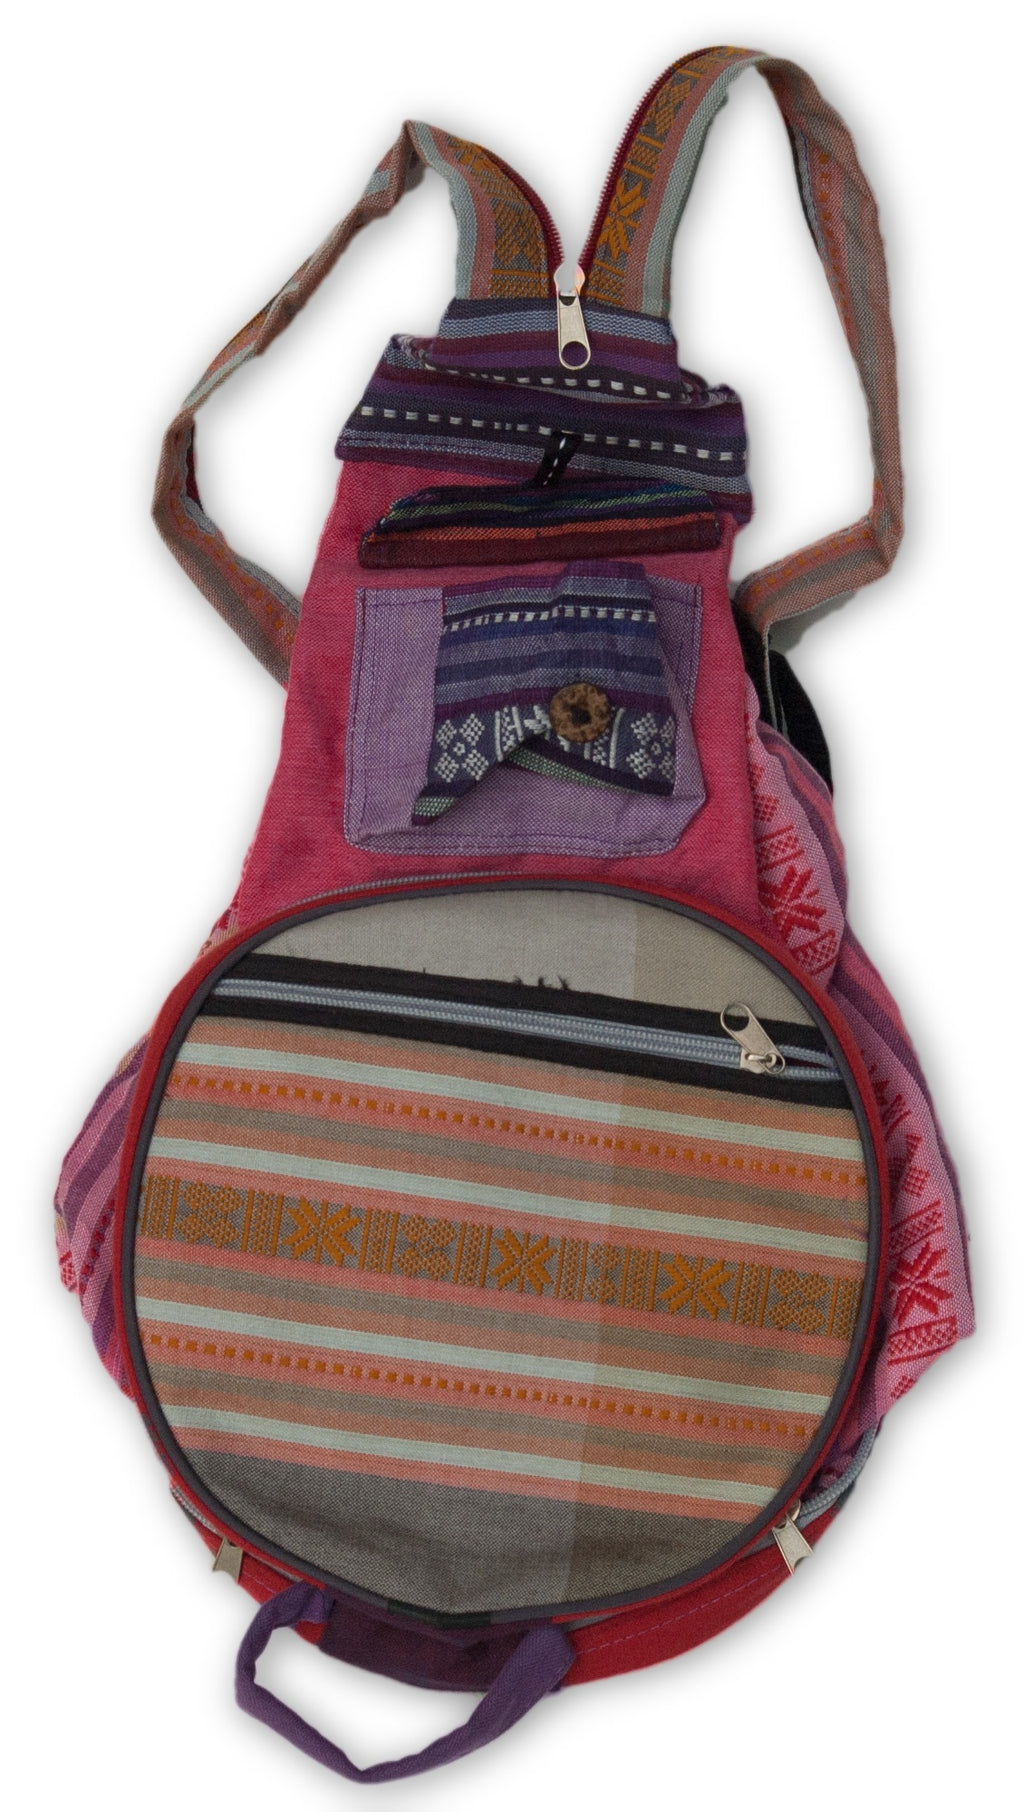 Medium Folding Backpack with Woven Pattern Fabric